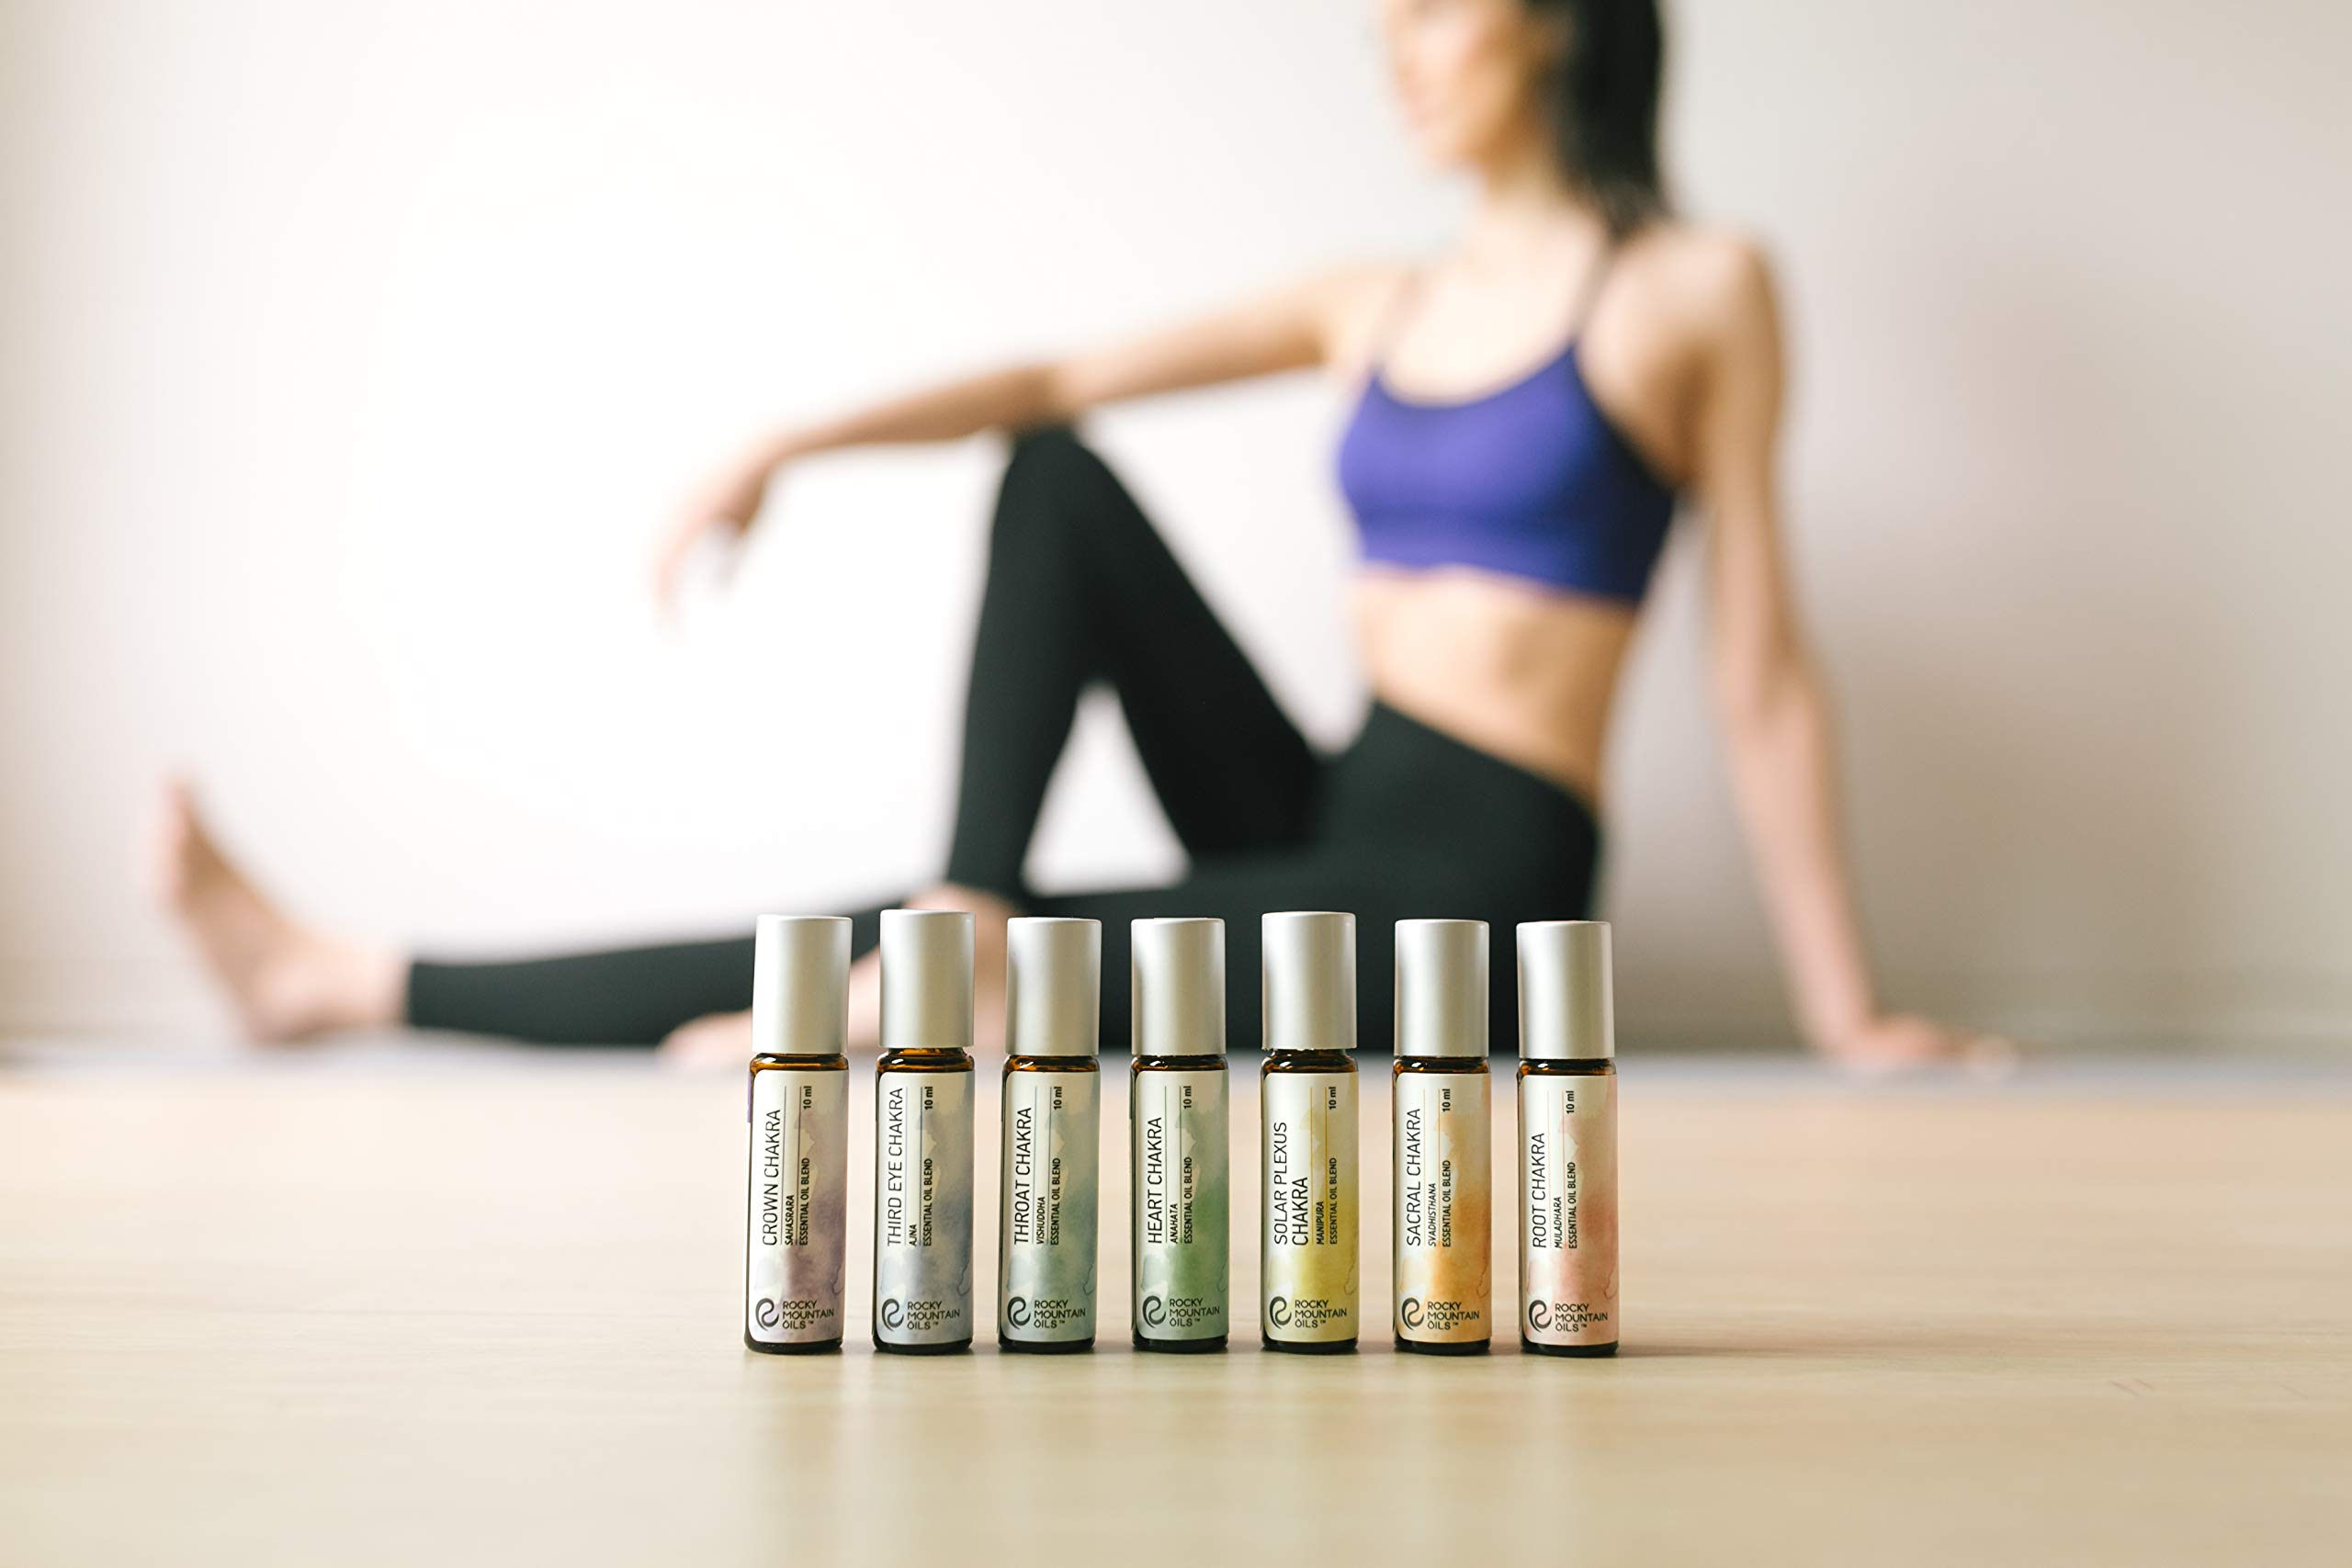 Rocky Mountain Oils - Chakra Blends Kit - 10 ml - 100% Pure and Natural Essential Oil Kit | Includes Root, Sacral, Solar Plexus, Heart, Throat, Third Eye, and Crown Chakras